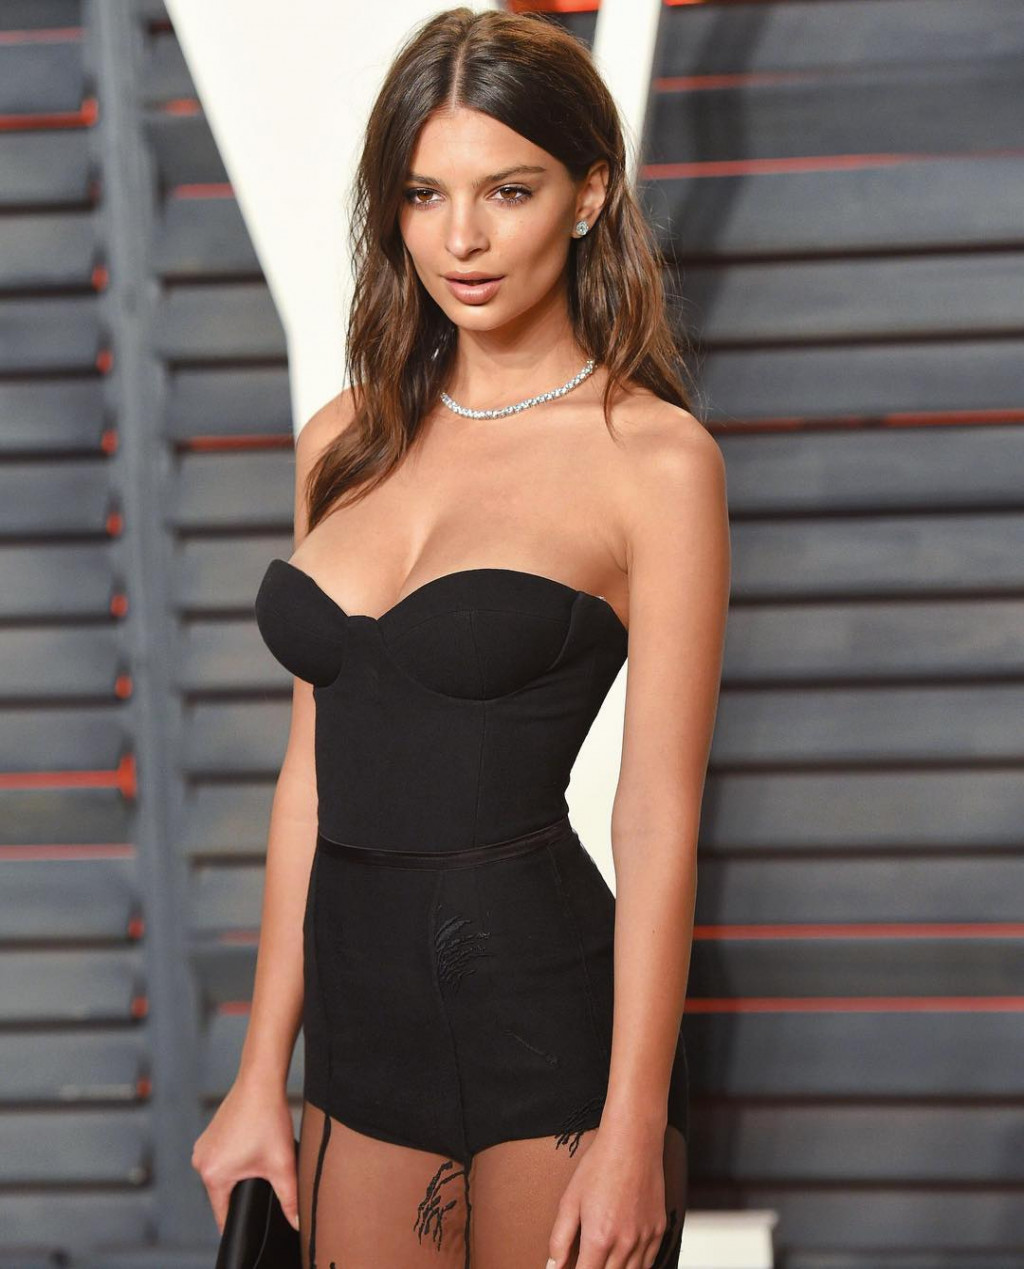 Hot Emily Ratajkowski Super Black Dress - Emily Ratajkowski Net Worth, Pics, Wallpapers, Career and Biography